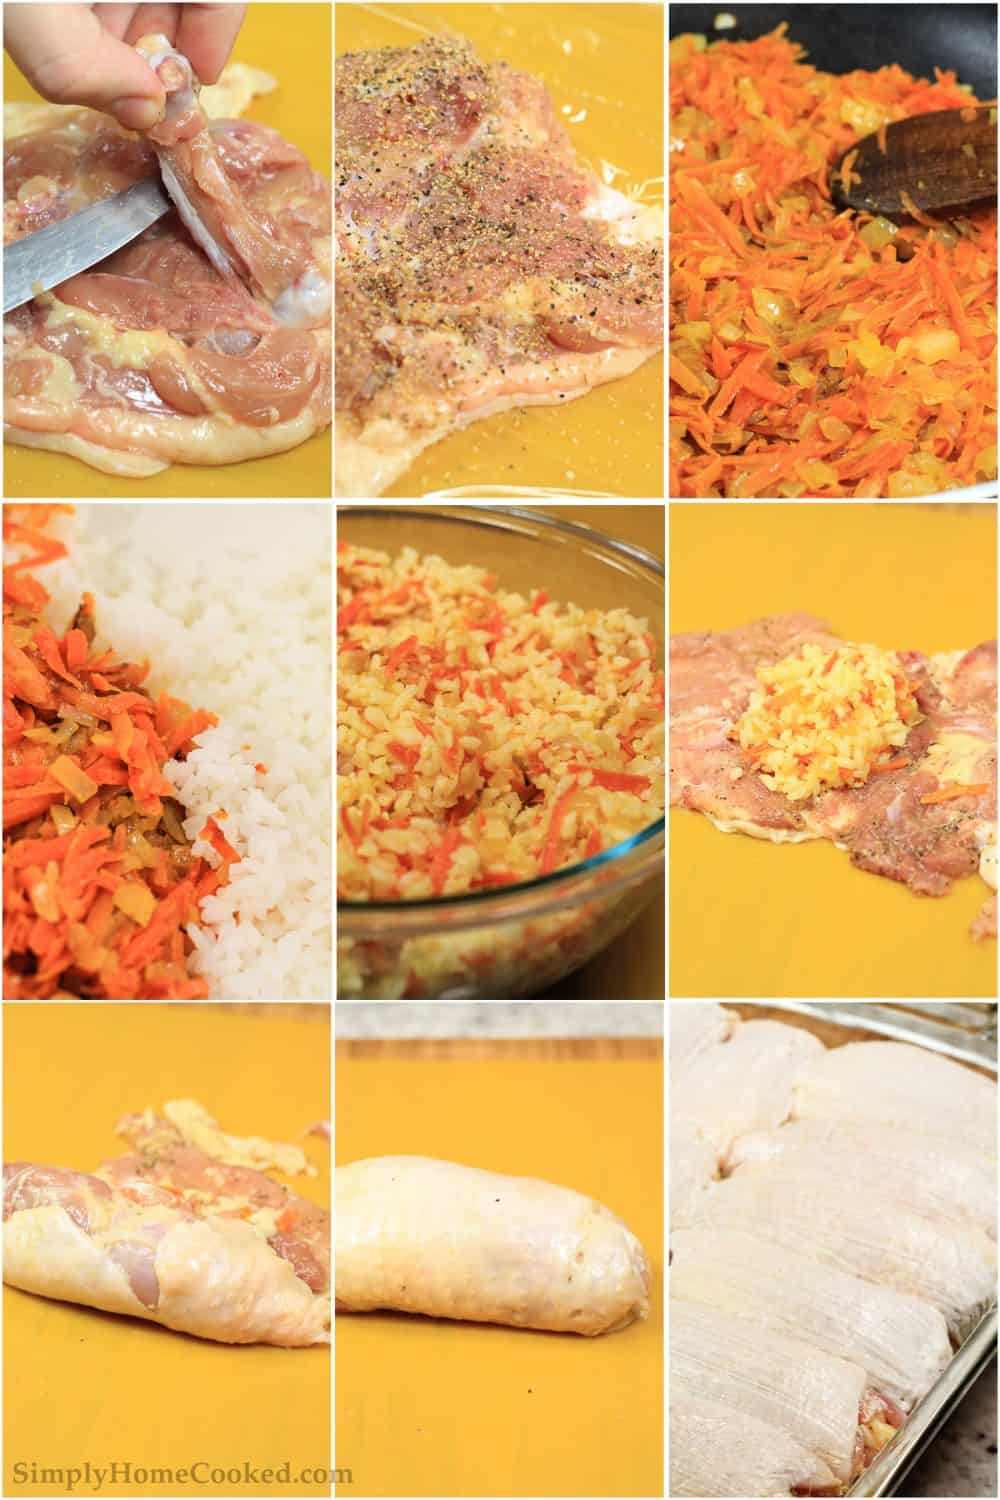 Picture collage tutorial of how to debone chicken thighs, cook vegetables and rice mixture, then stuff chicken thighs before baking them for the stuffed chicken thighs recipe